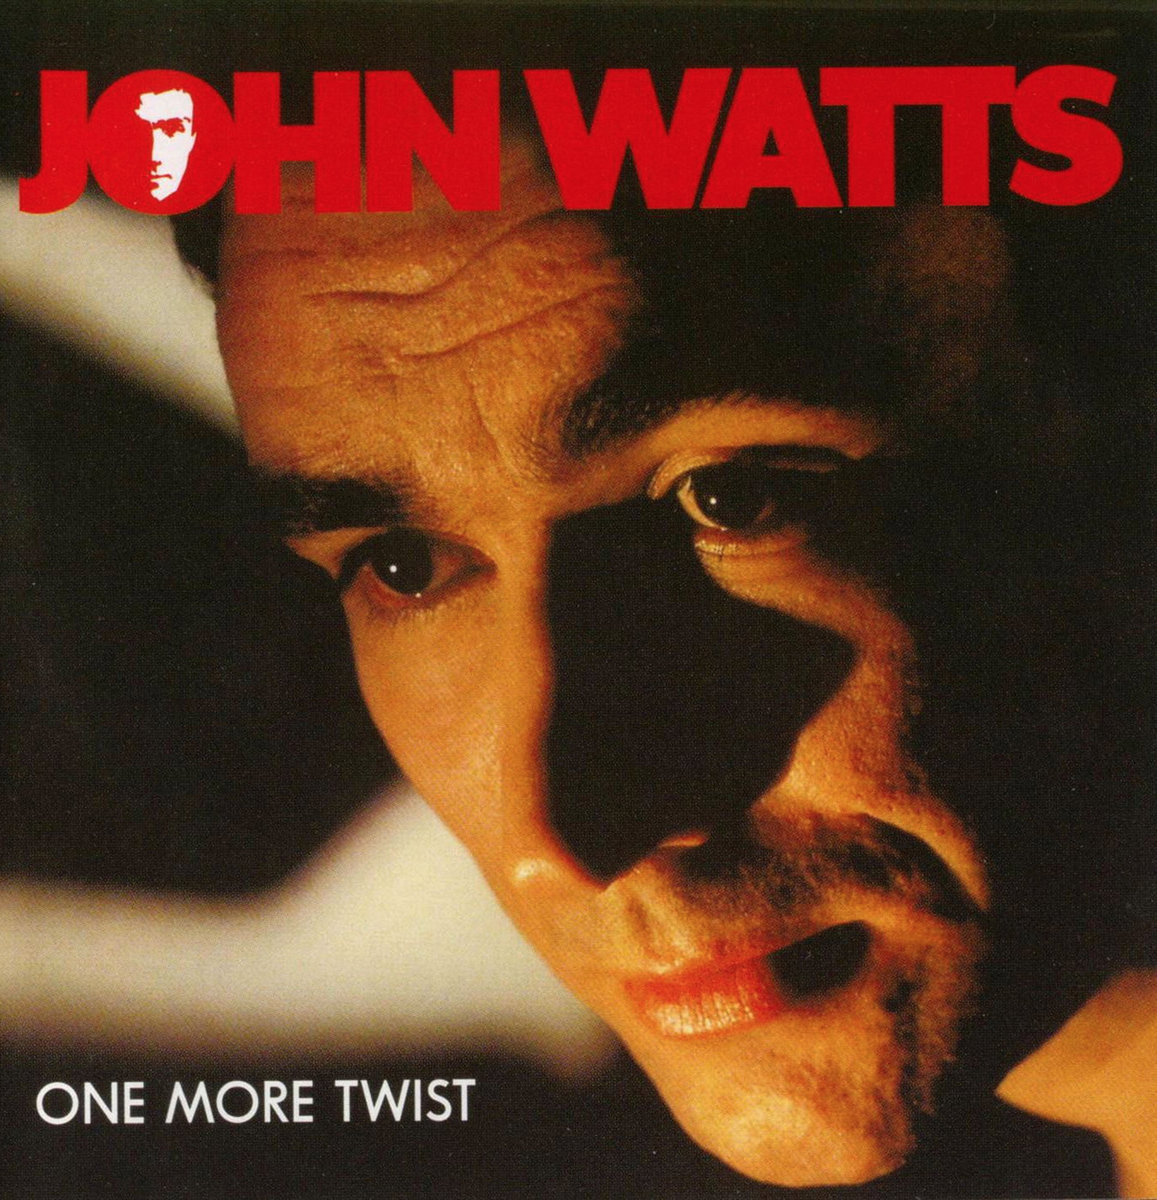 John Watts - One More Twist.jpg